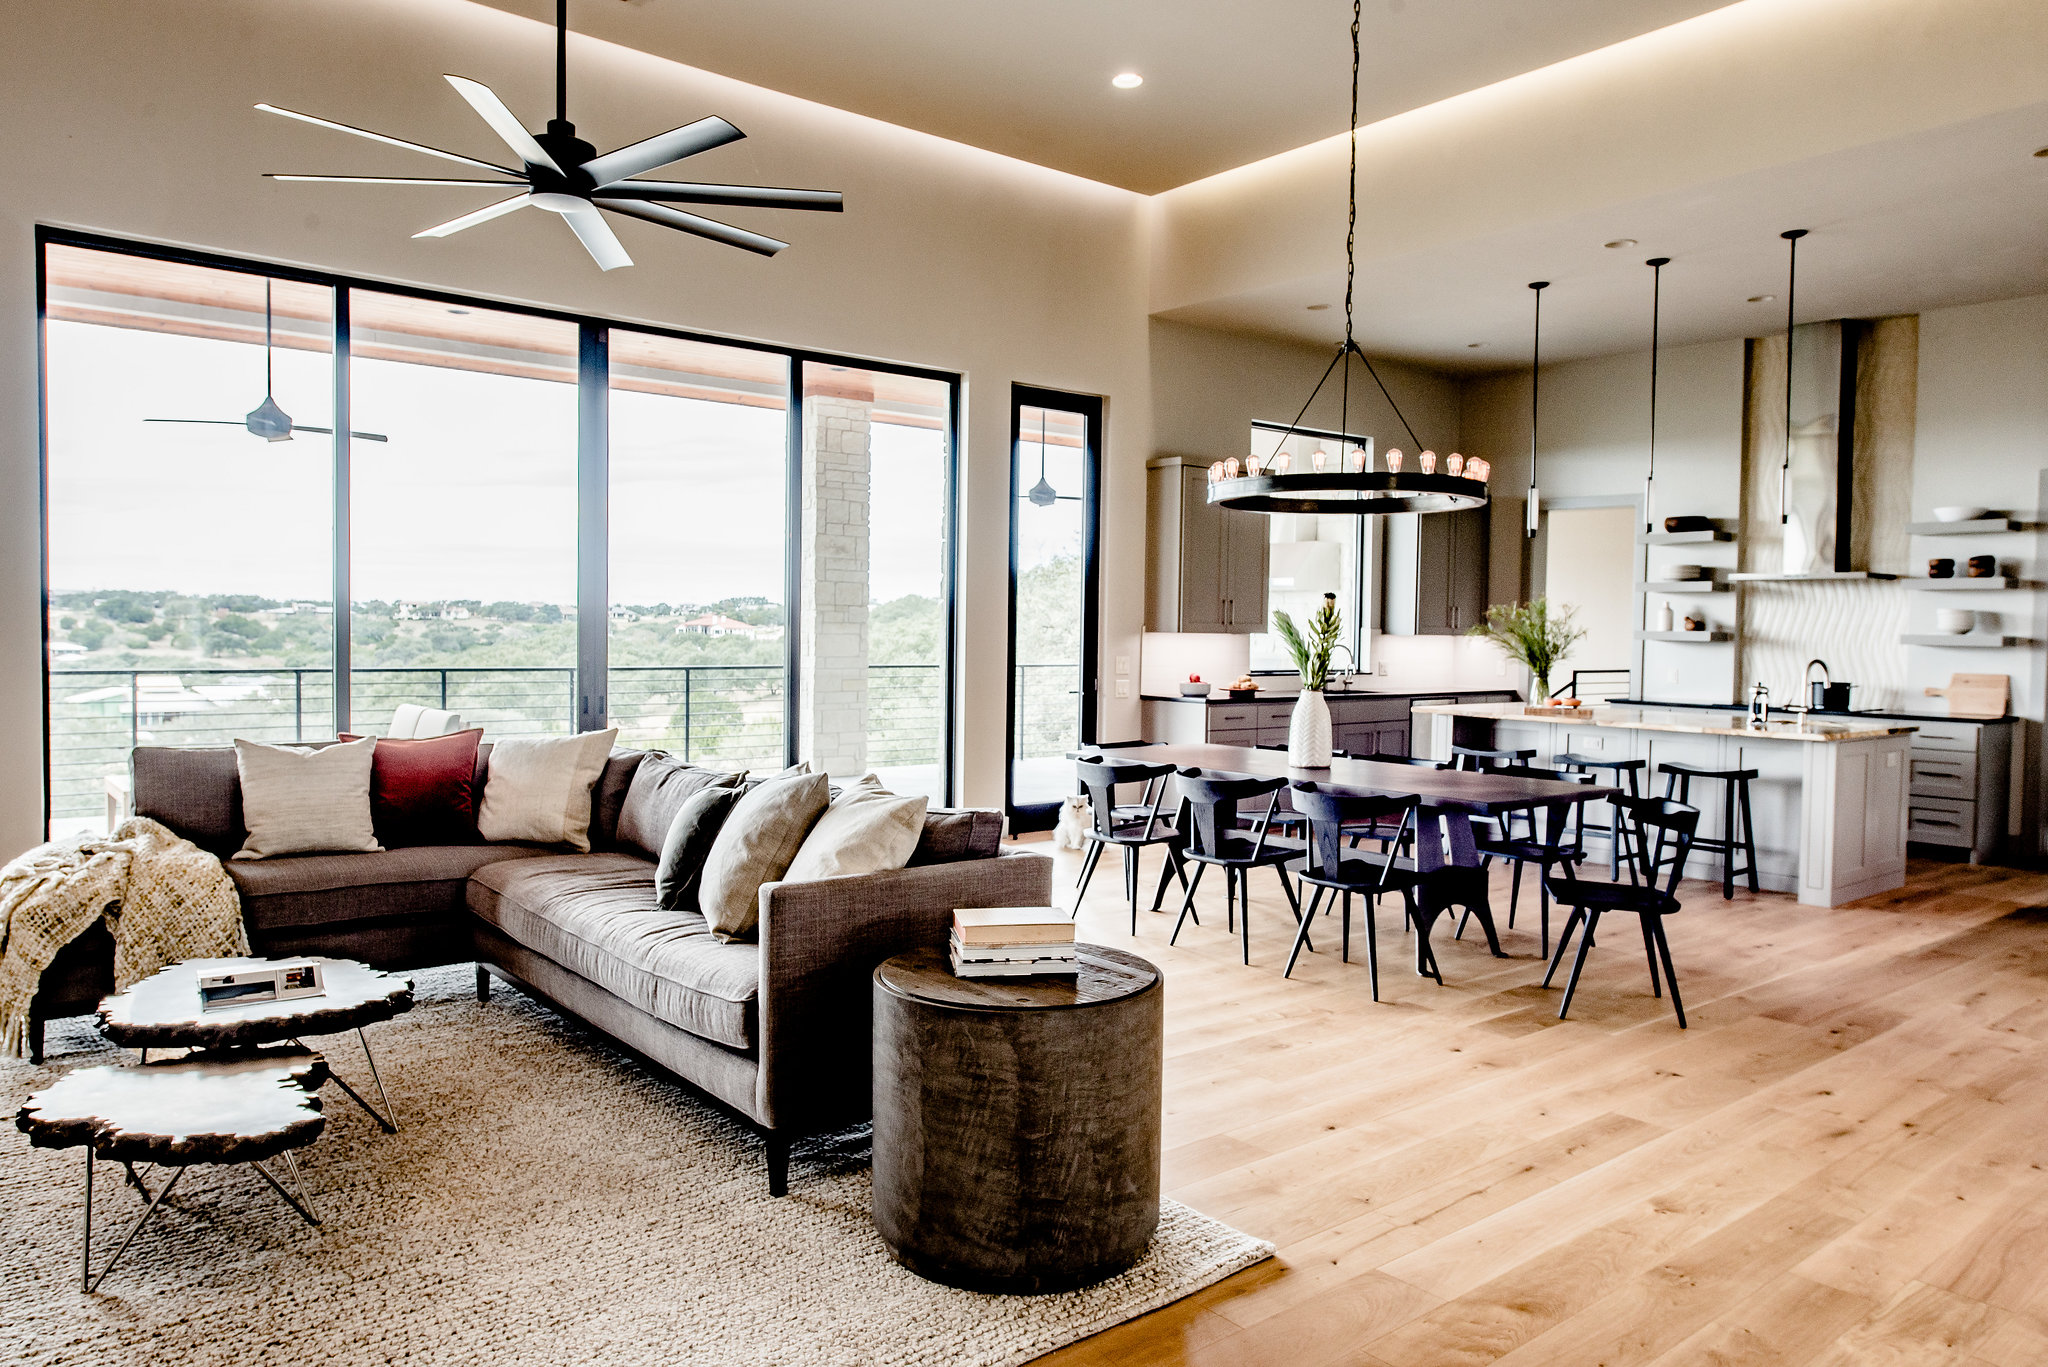 When determining size, pay attention not only to the relationship of the rug with the furniture feet, but side tables can also be a factor. In our project above the rug was sized to ensure the side table could sit cleanly on the rug. Rug provided by Black Sheep Unique. Photo credit: An Indoor Lady.